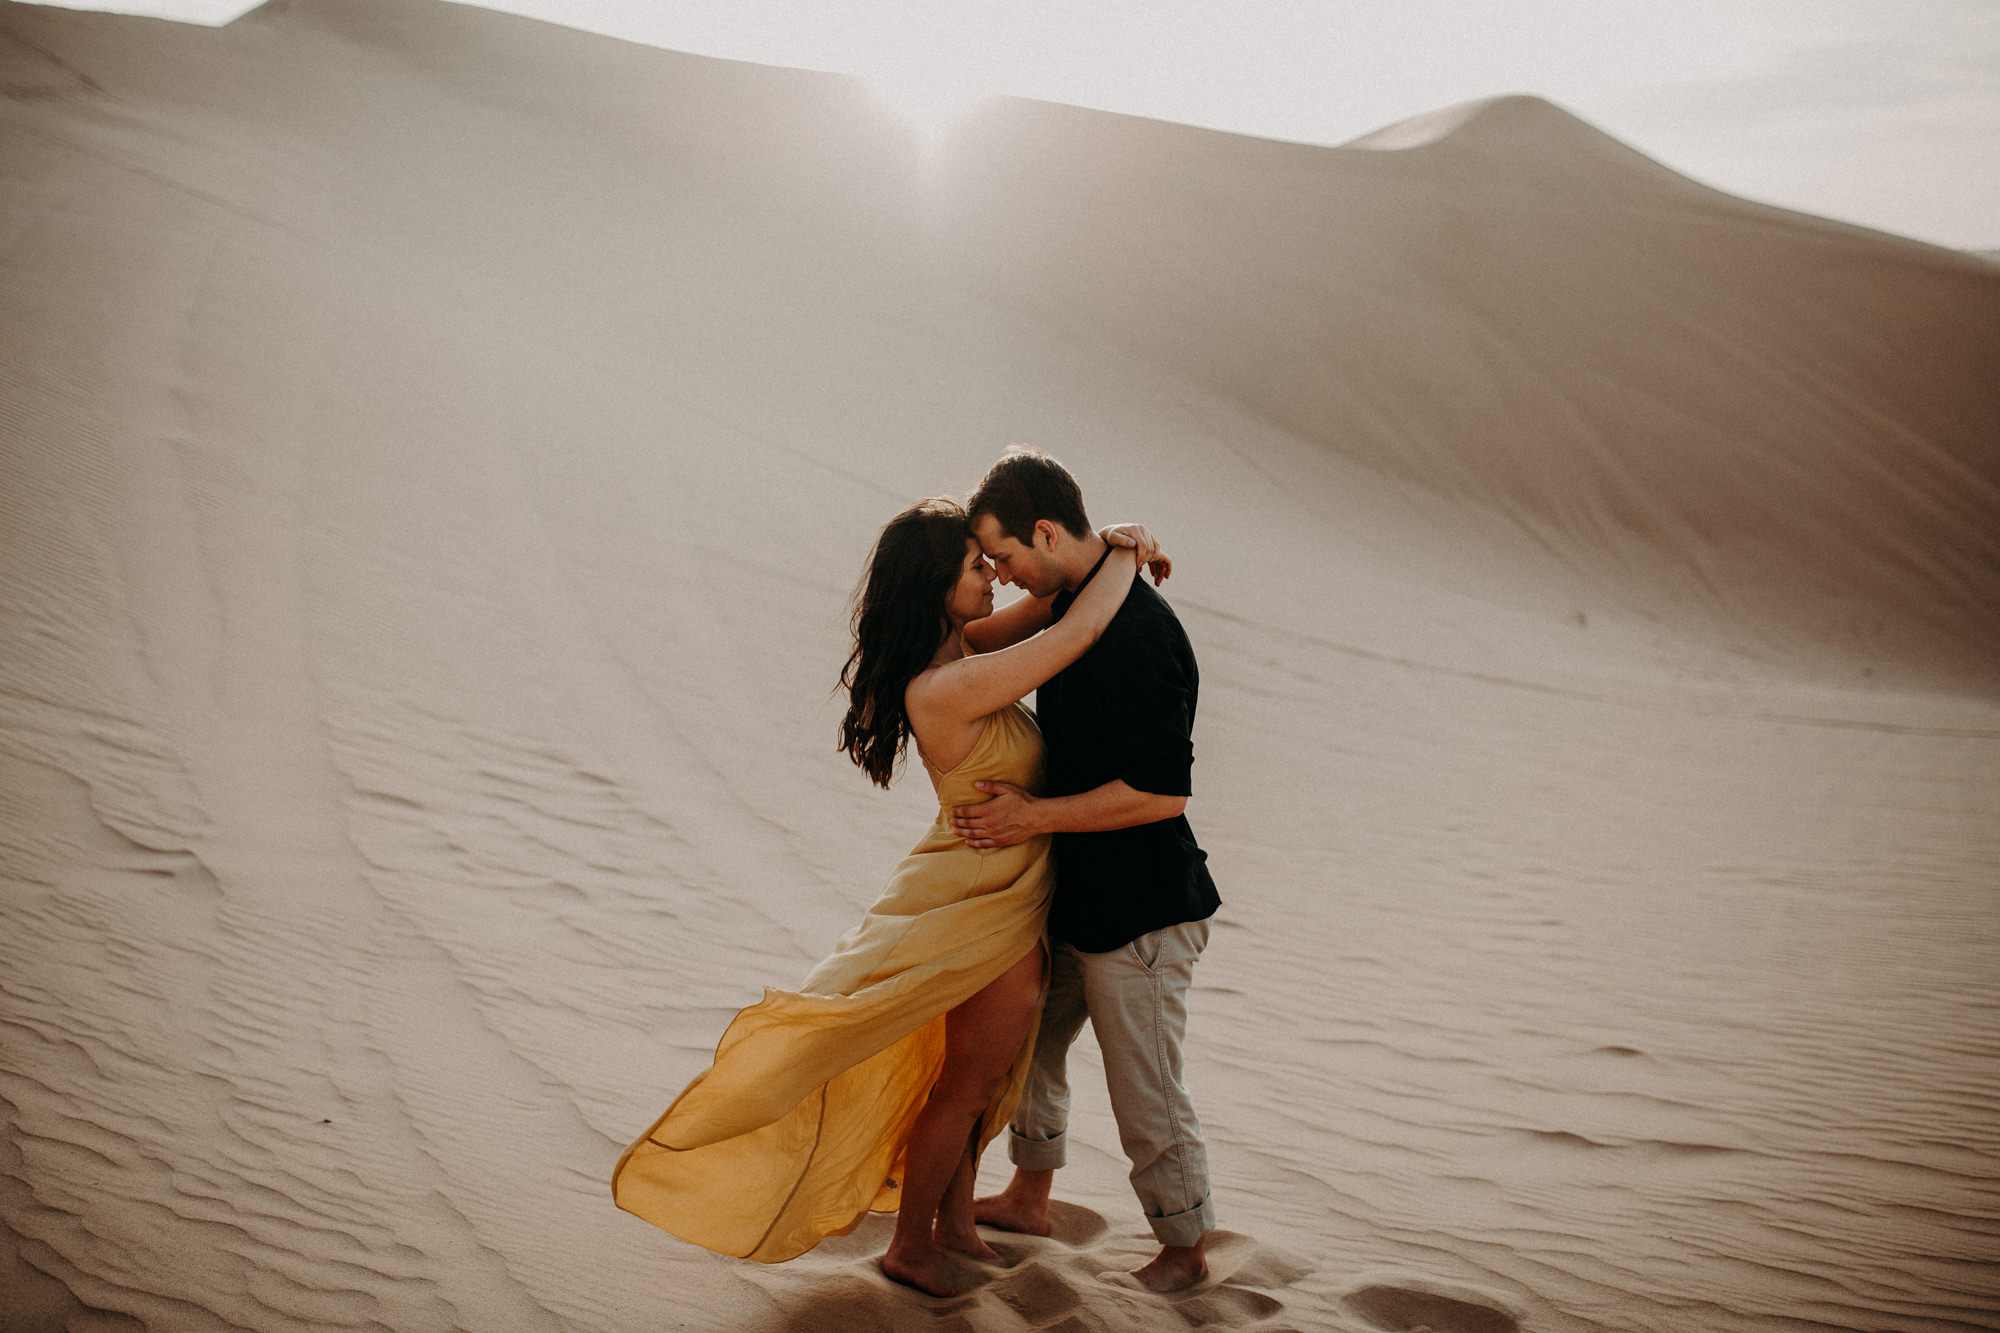 Best-place-to-elope-near-palm-springs-glamis- sand-dunes-6.jpg